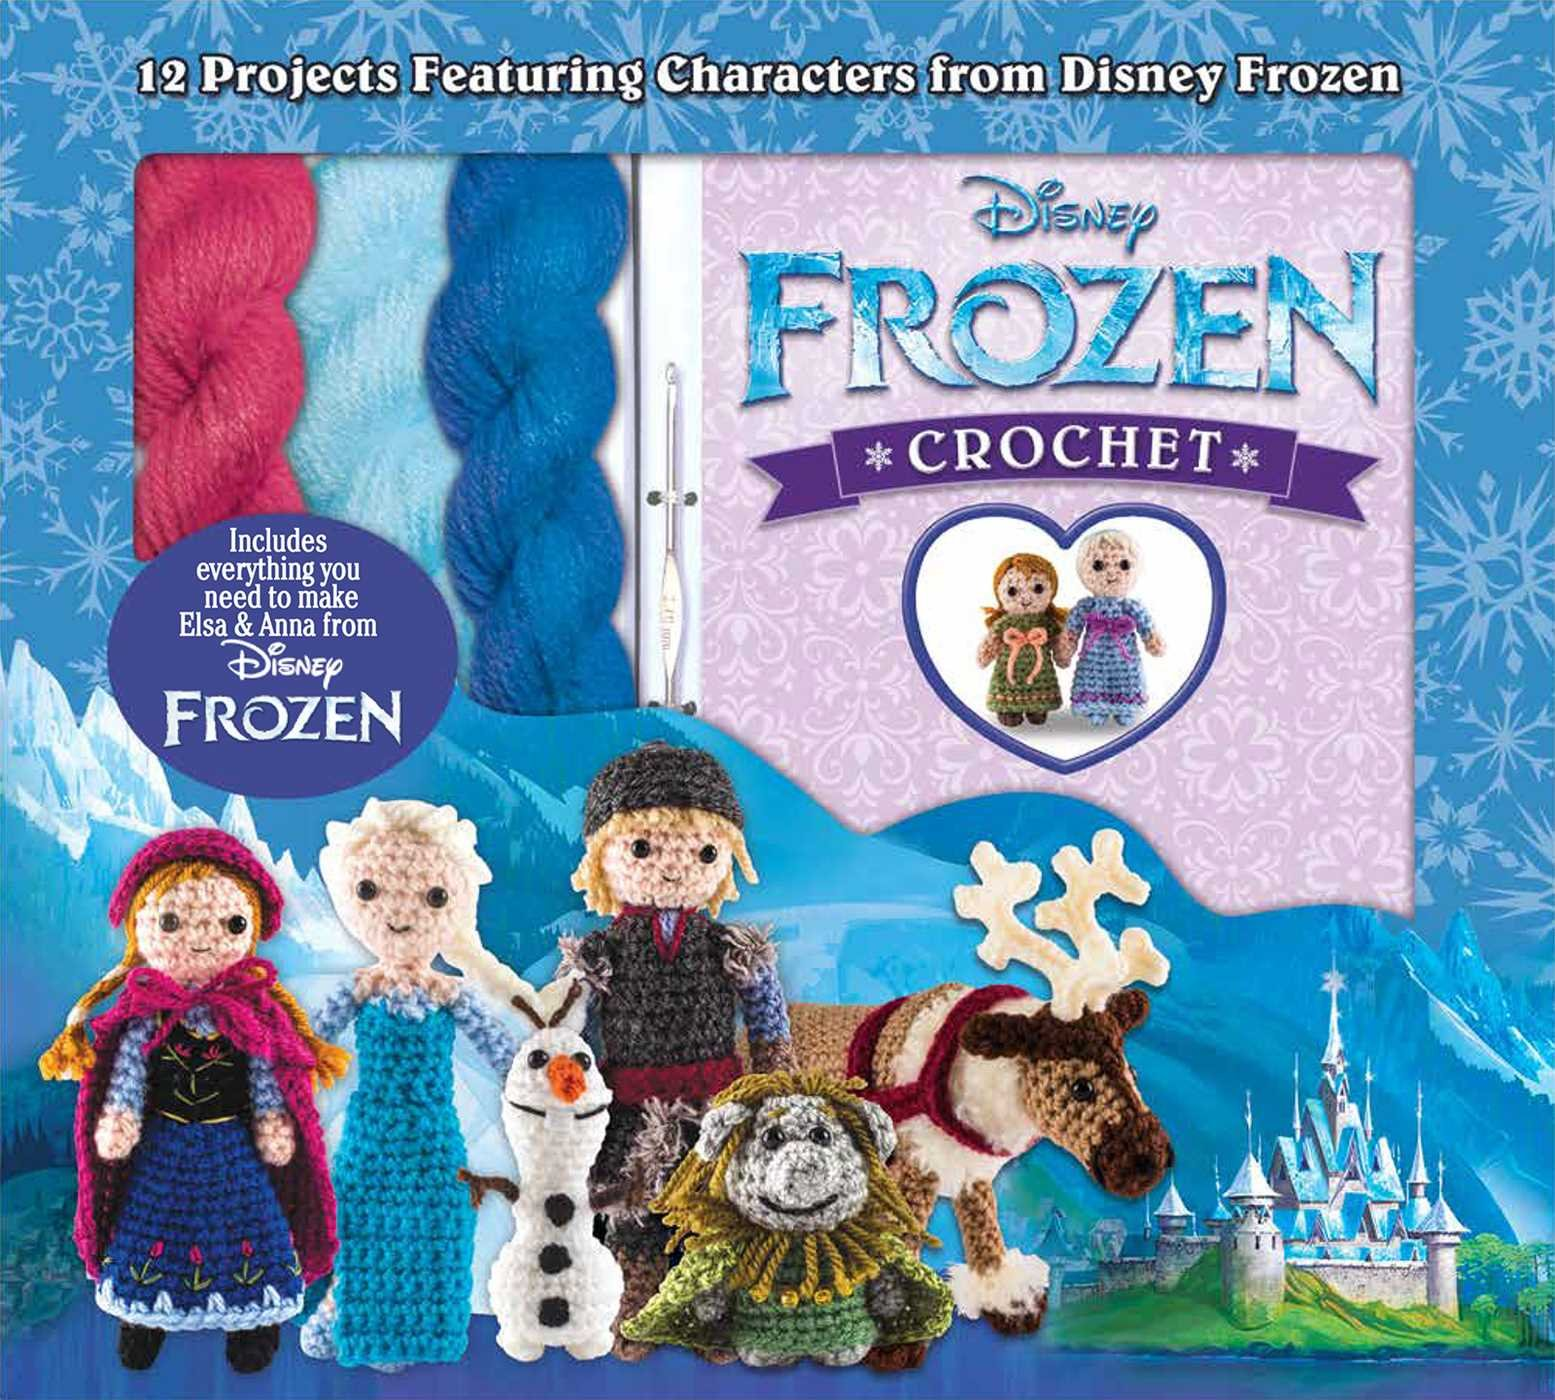 Disney Frozen Crochet Box Set product image